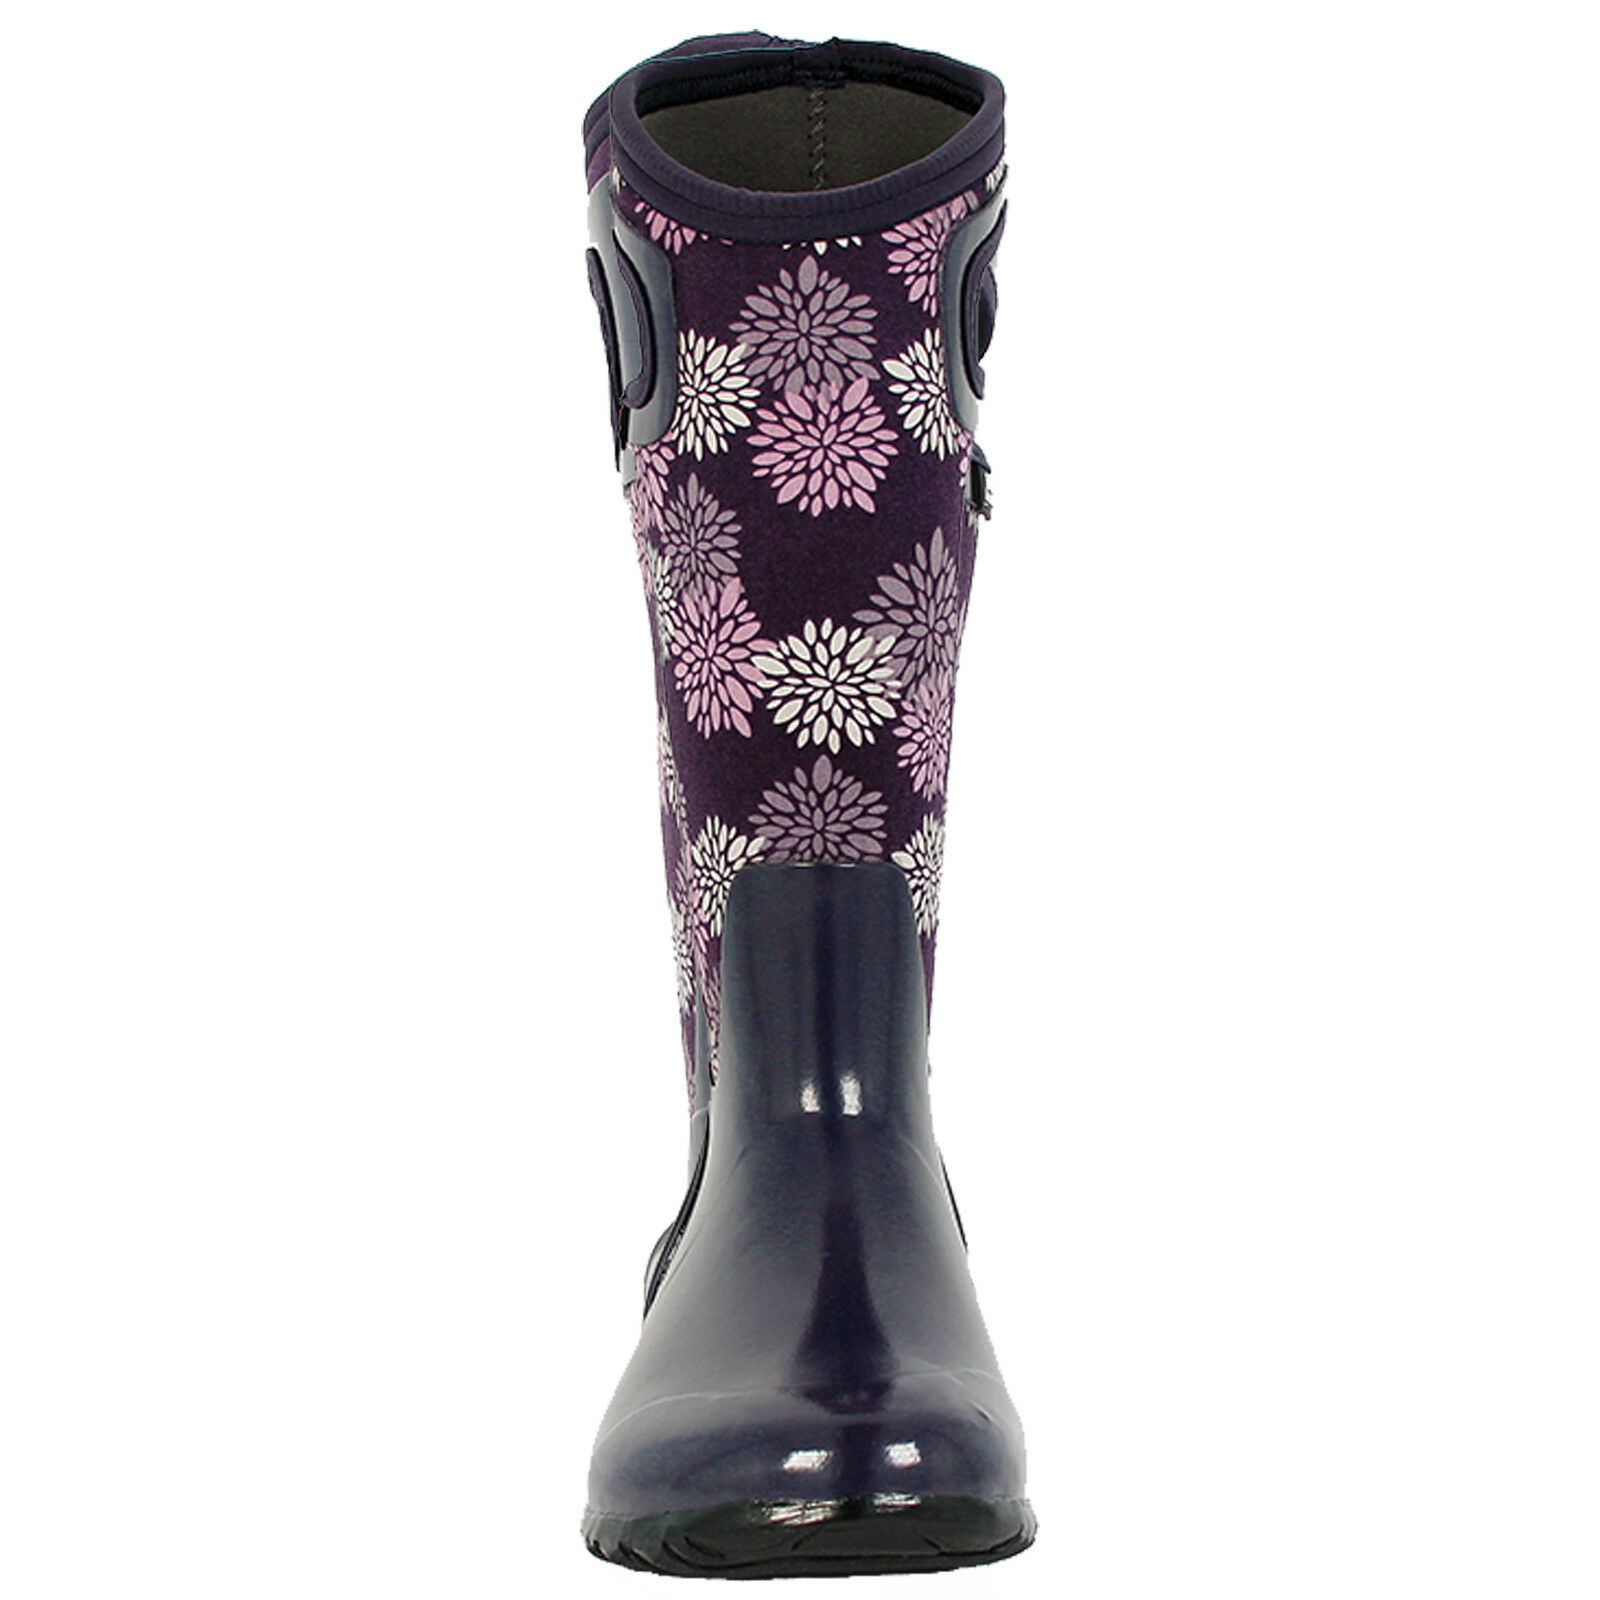 LADIES BOGS NORTH HAMPTON POMPONS WELLINGTON PLUM INSULATED WARM WELLINGTON POMPONS BOOT 72040 424924